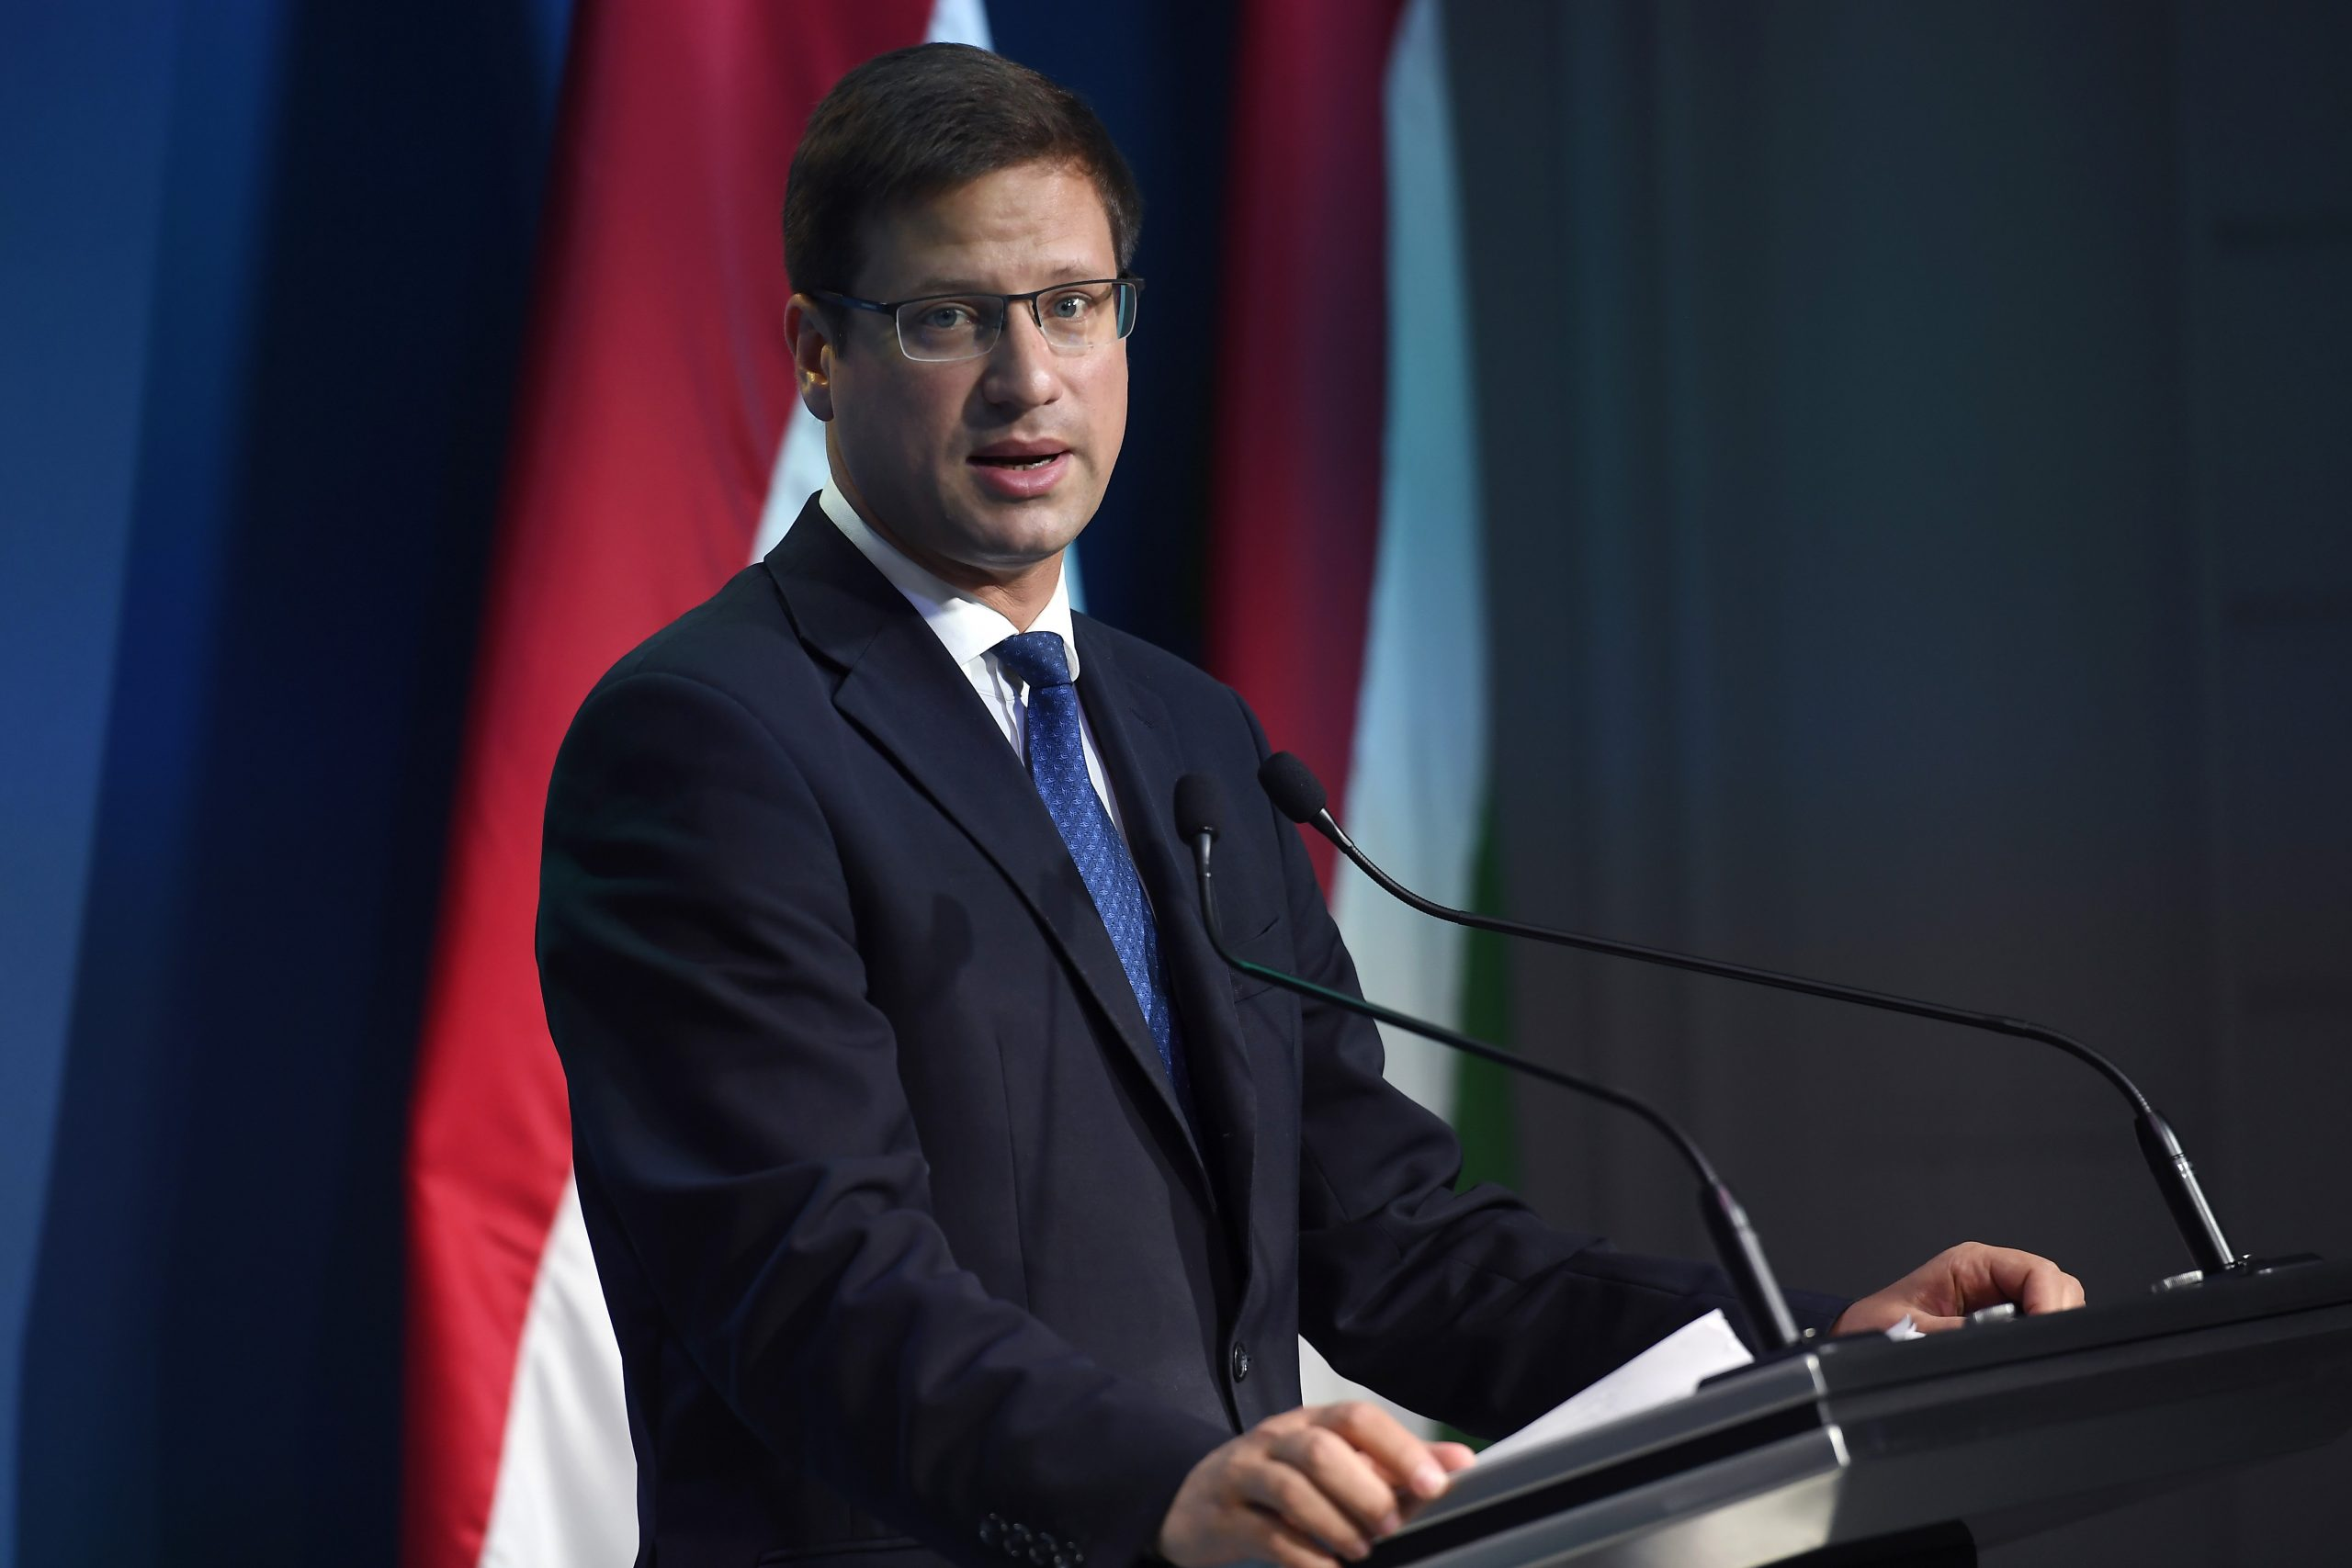 PMO Head Gulyás to Die Presse: Hungarian Press More Diverse than Germany's post's picture